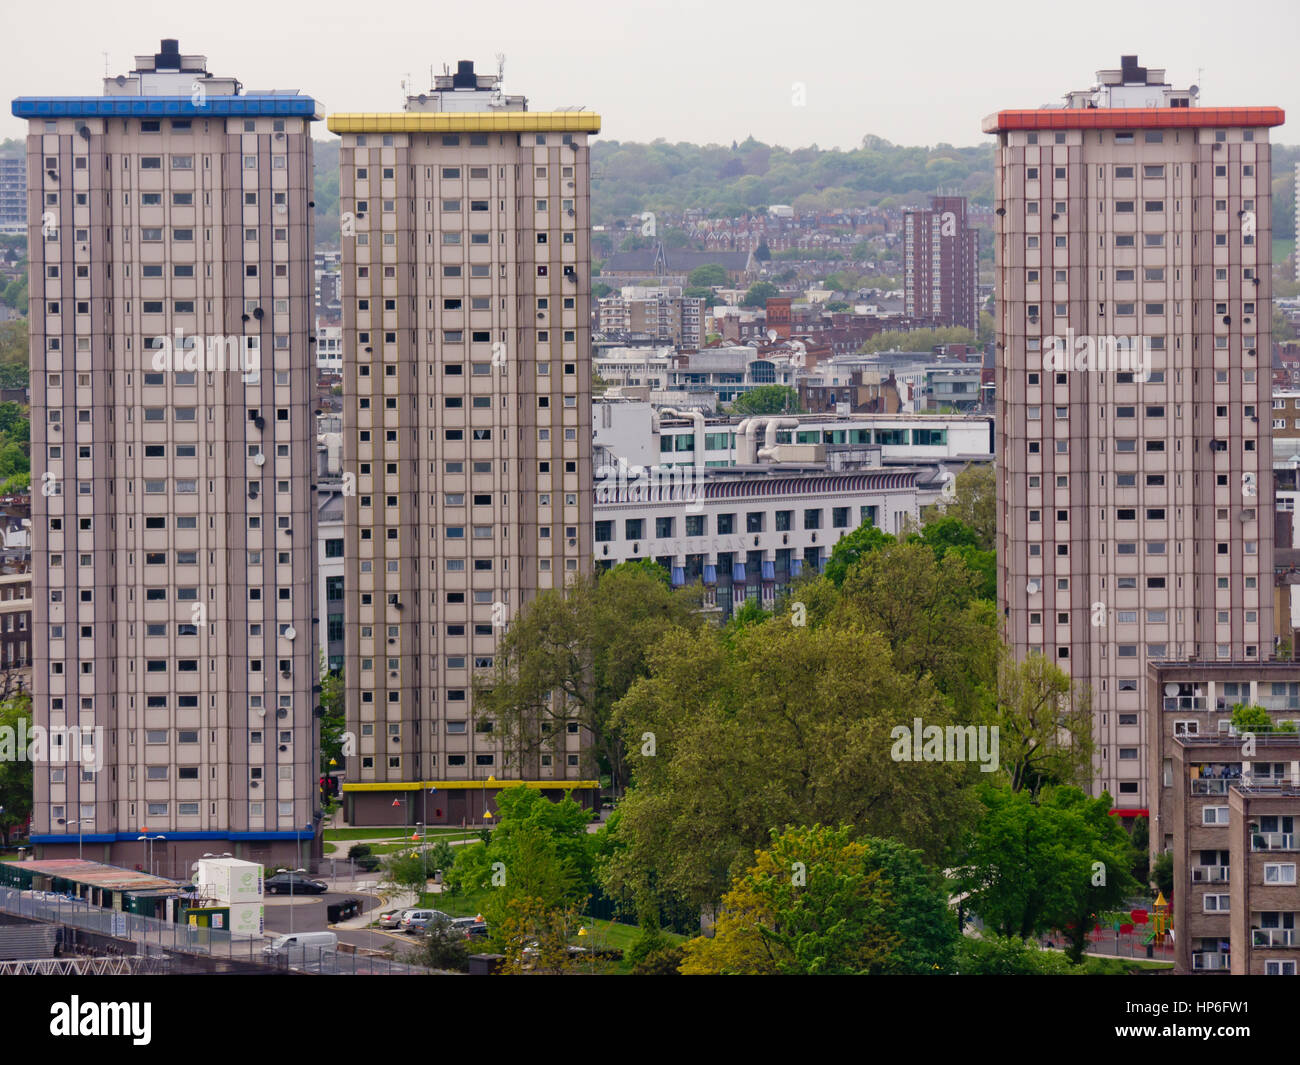 Ampthill housing estate near Mornington Crescent in London identified by the distinctive colour coded tower blocks Stock Photo